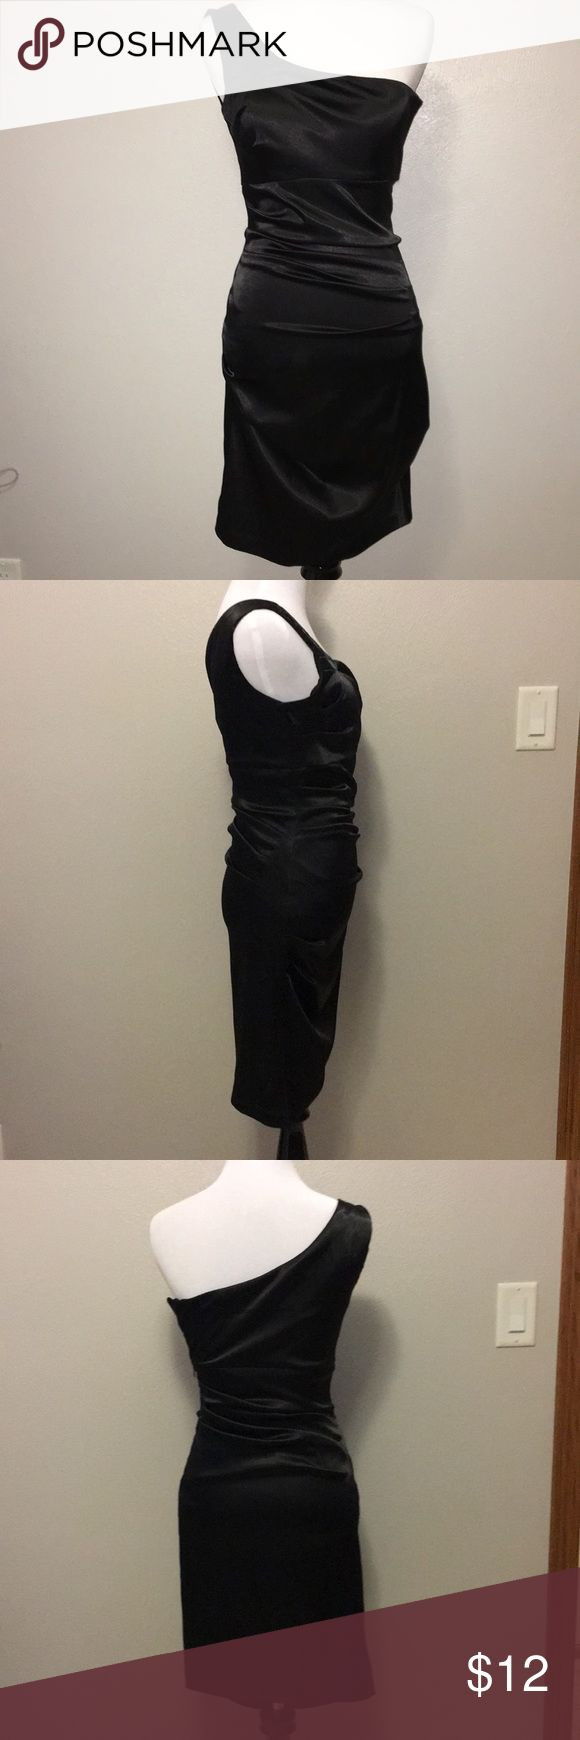 Black one shoulder dress. Size 3/4 Rock this dress at any formal occasion. Add some red heels to spice it it, or some silver heels for class and eloquence. B. Smart Dresses One Shoulder